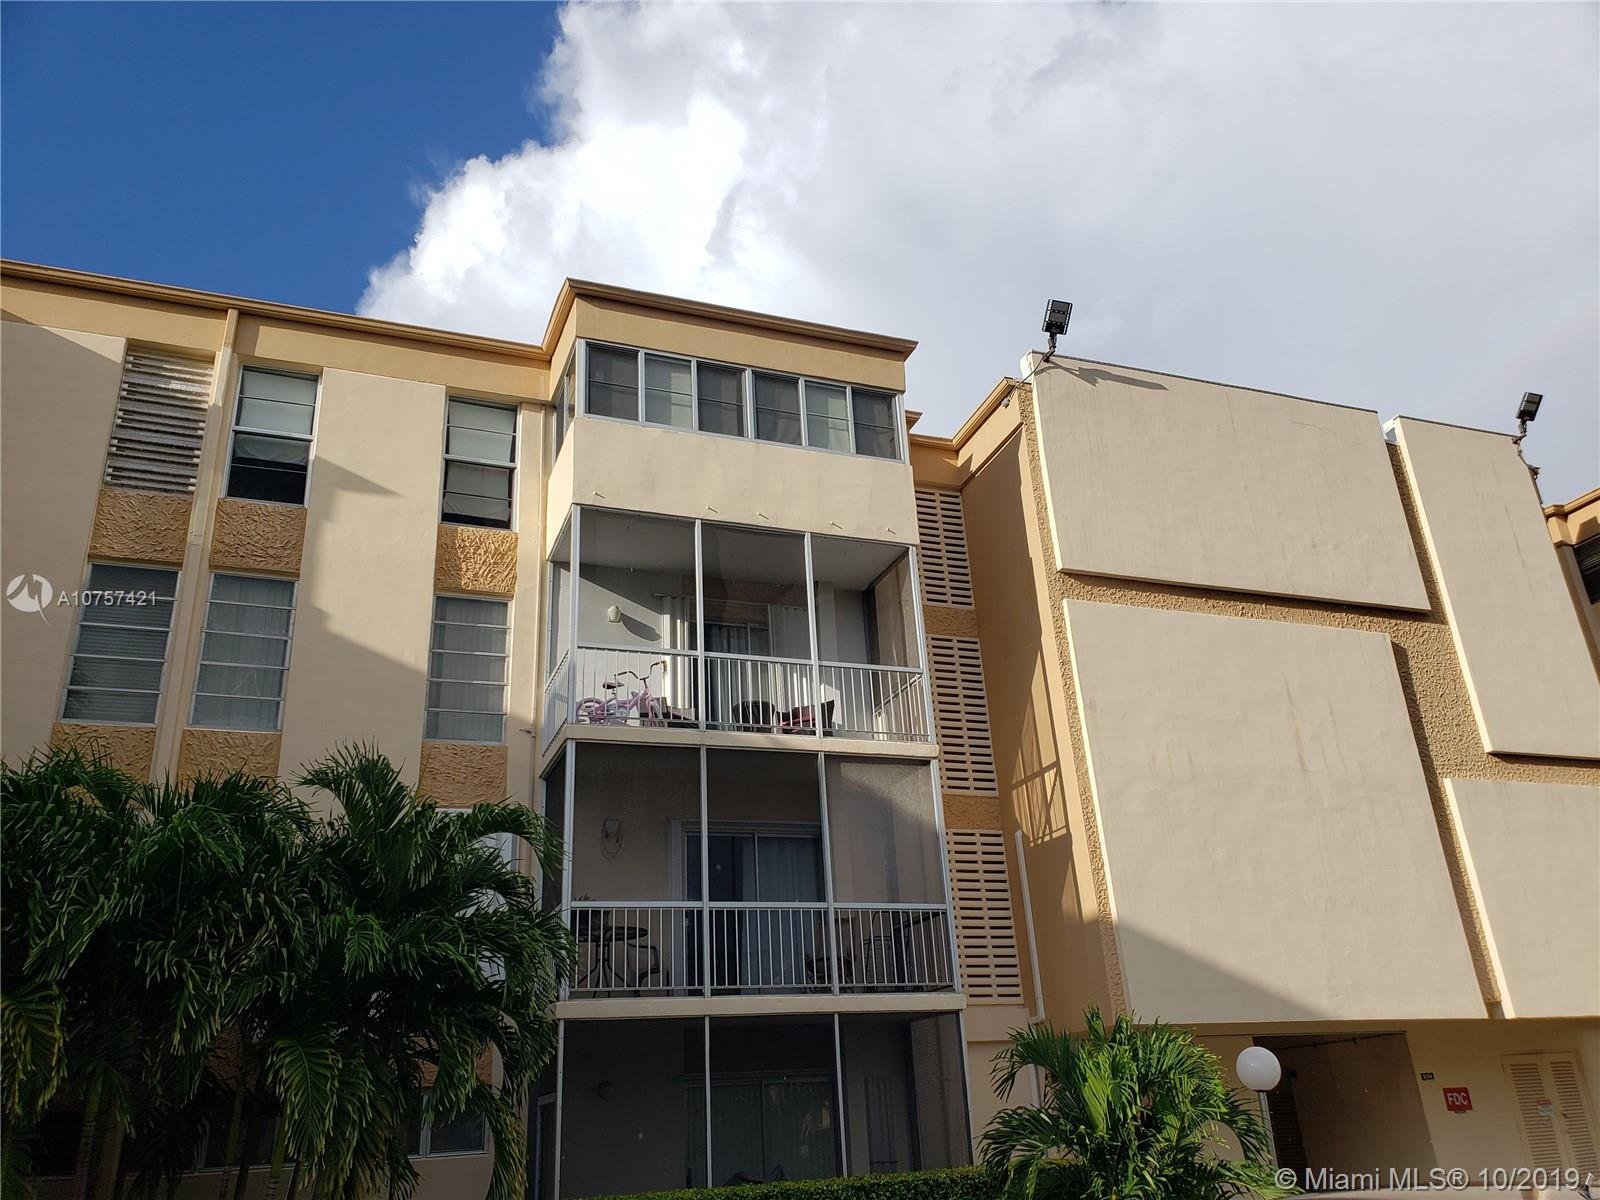 9159 S W 77th Ave #406 For Sale A10757421, FL